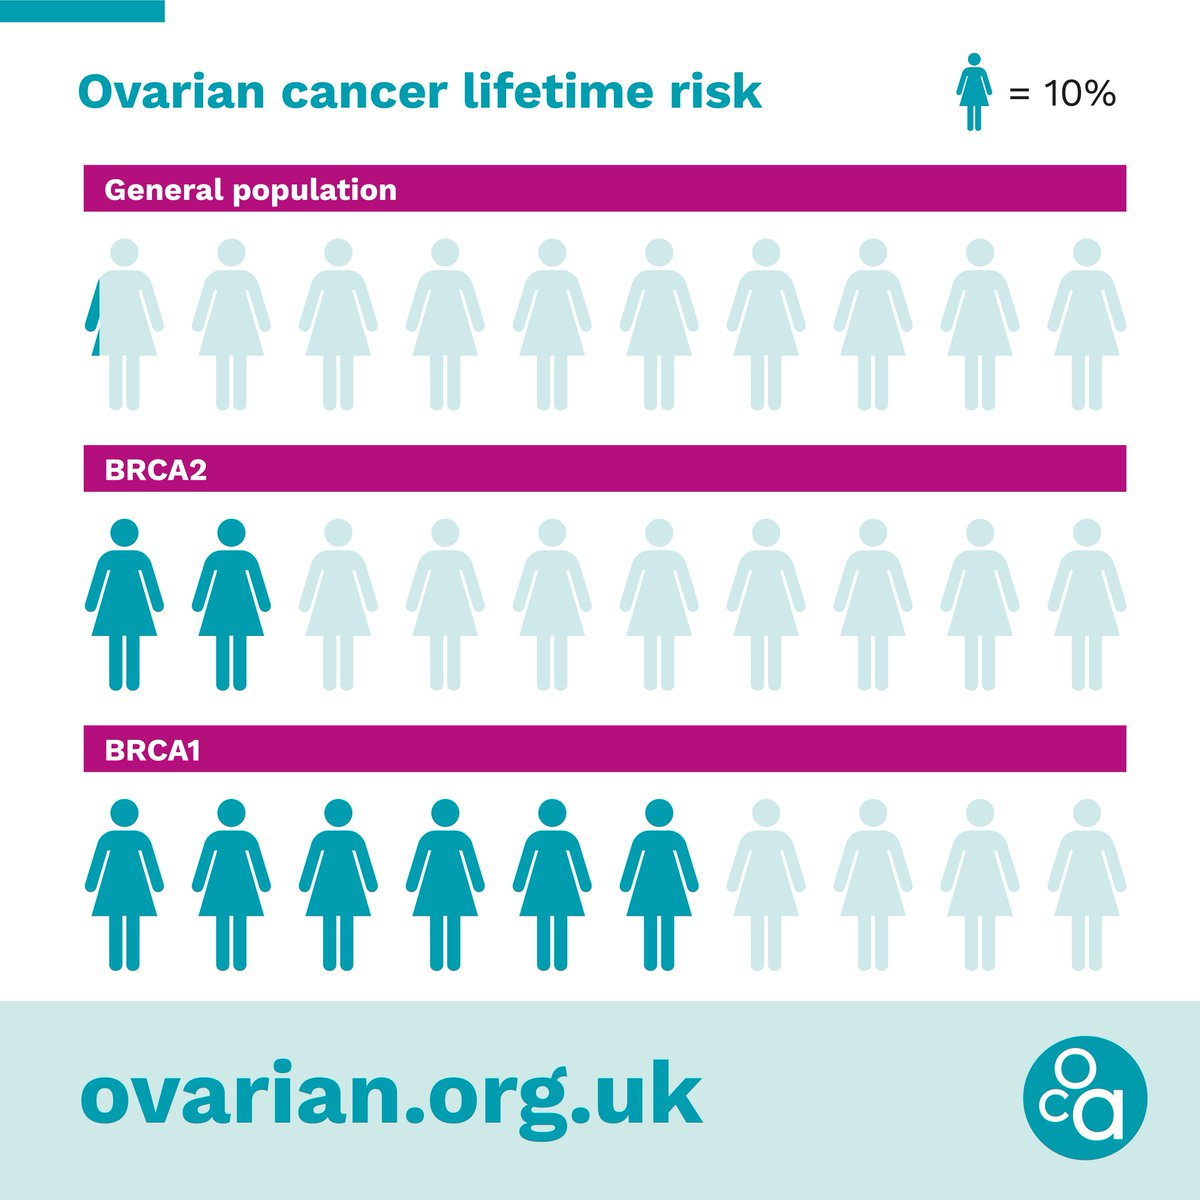 Ovarian Cancer Action On Twitter Over 1 000 Women In The Uk Could Be Saved Each Year If Armed With The Knowledge About Their Genetic Cancer Risk Use Our New Hereditary Cancer Risk